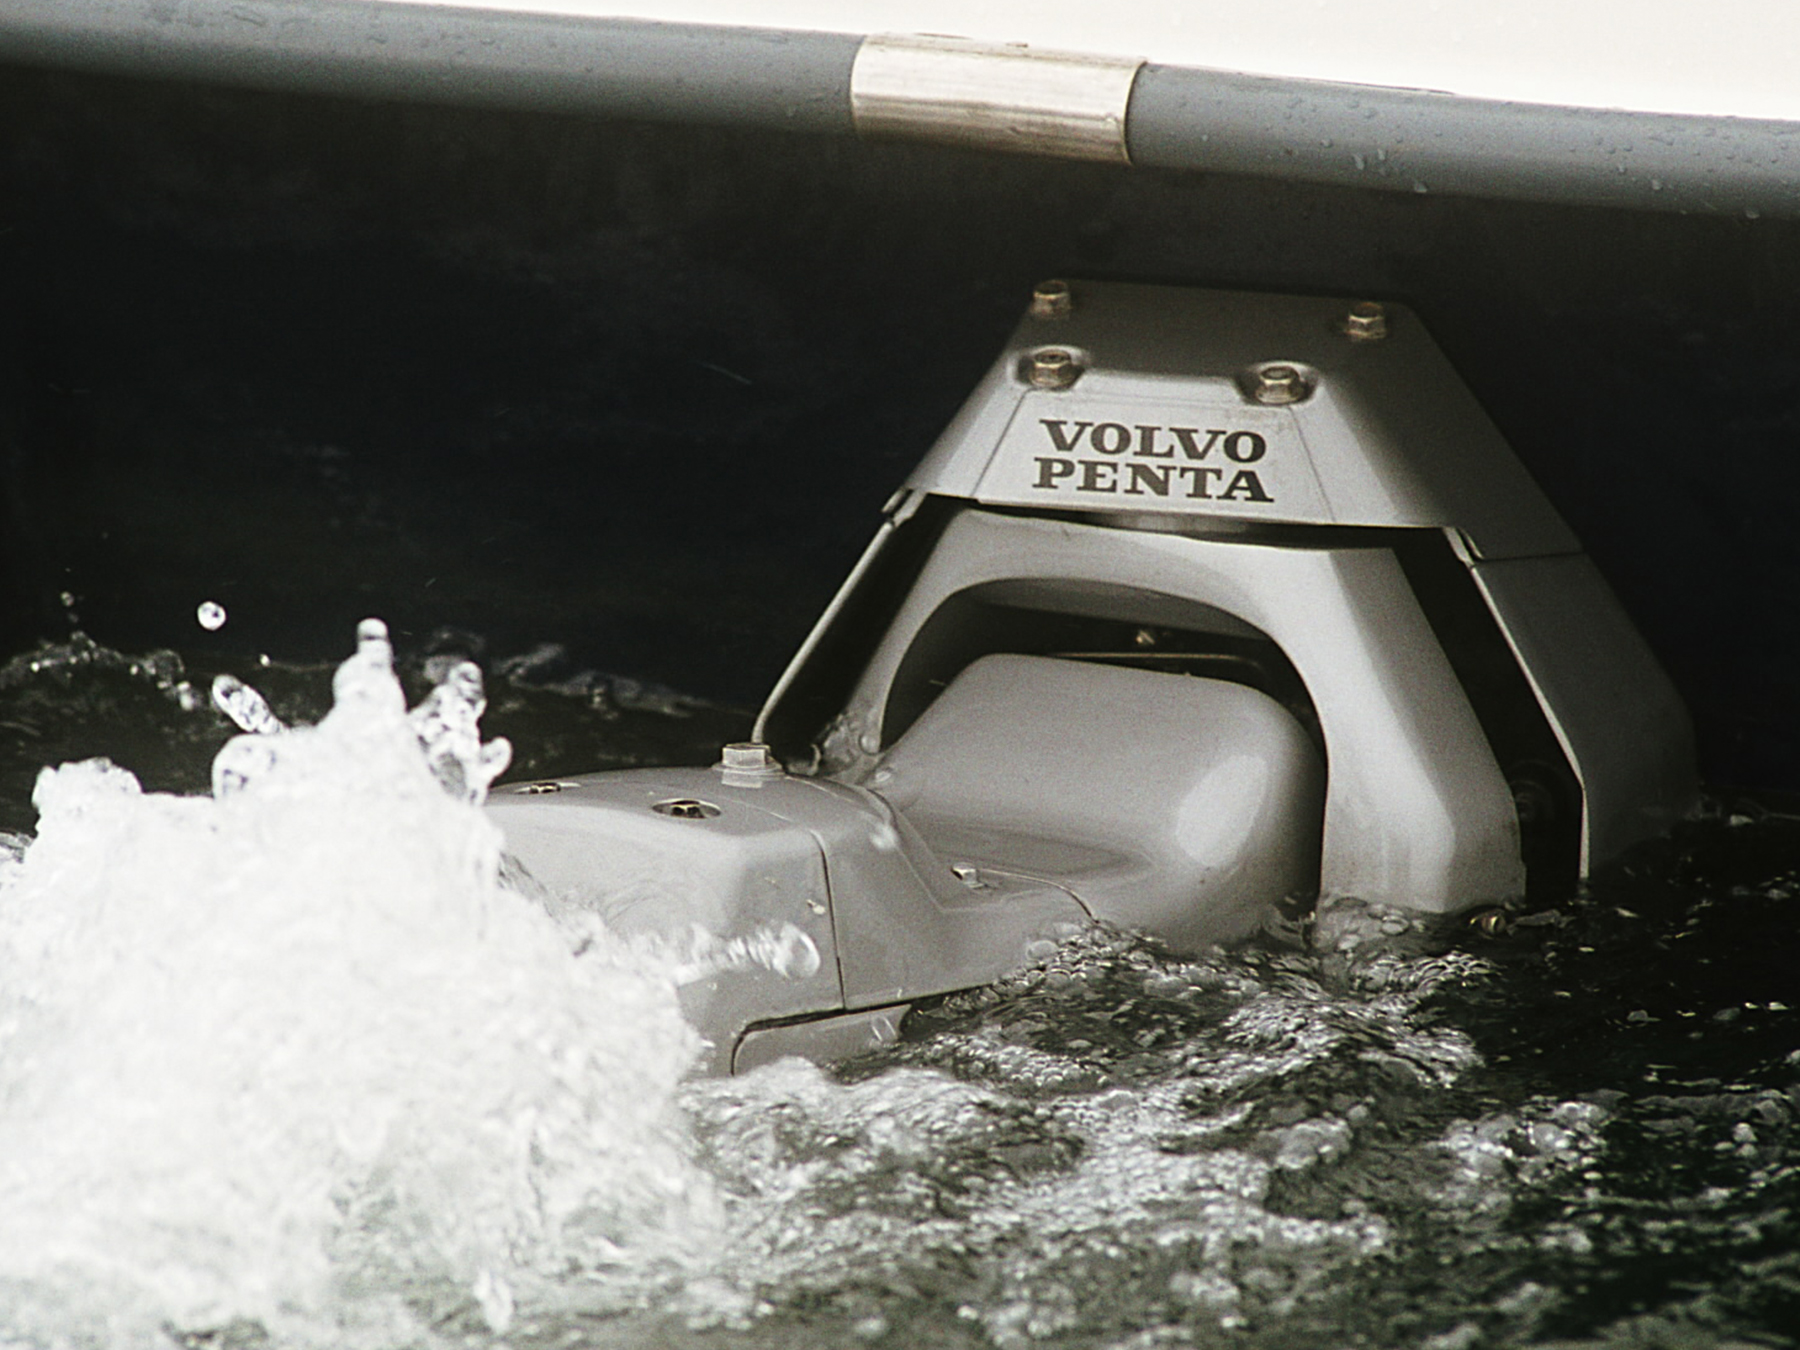 Action shot of Volvo Penta engine in the water